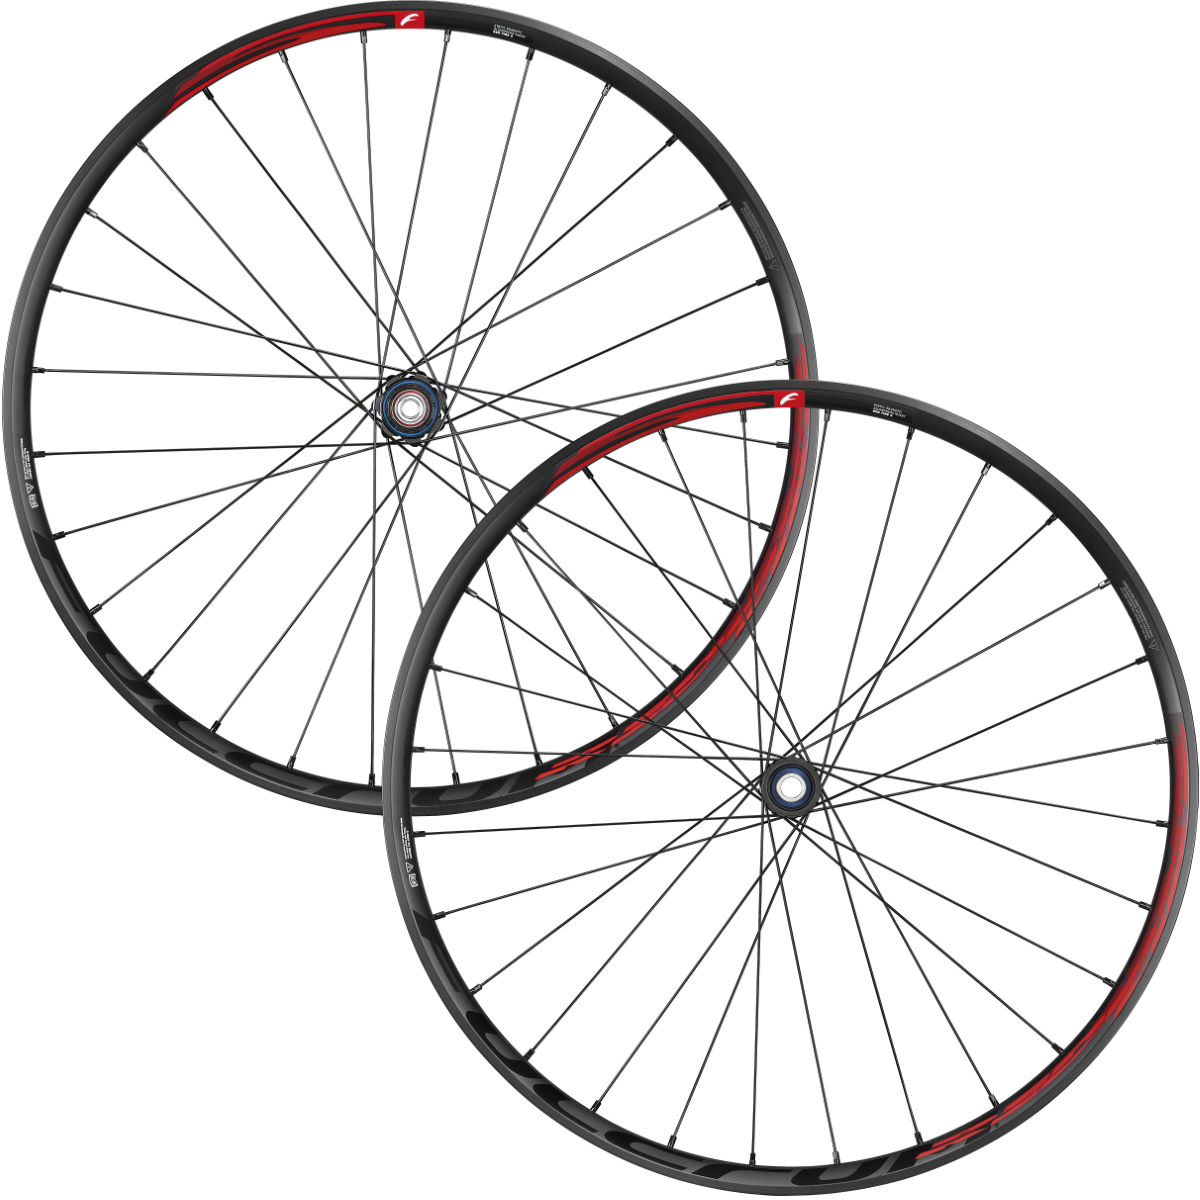 Fulcrum RED FIRE 5 Boost MTB Wheelset - Ruedas de competición